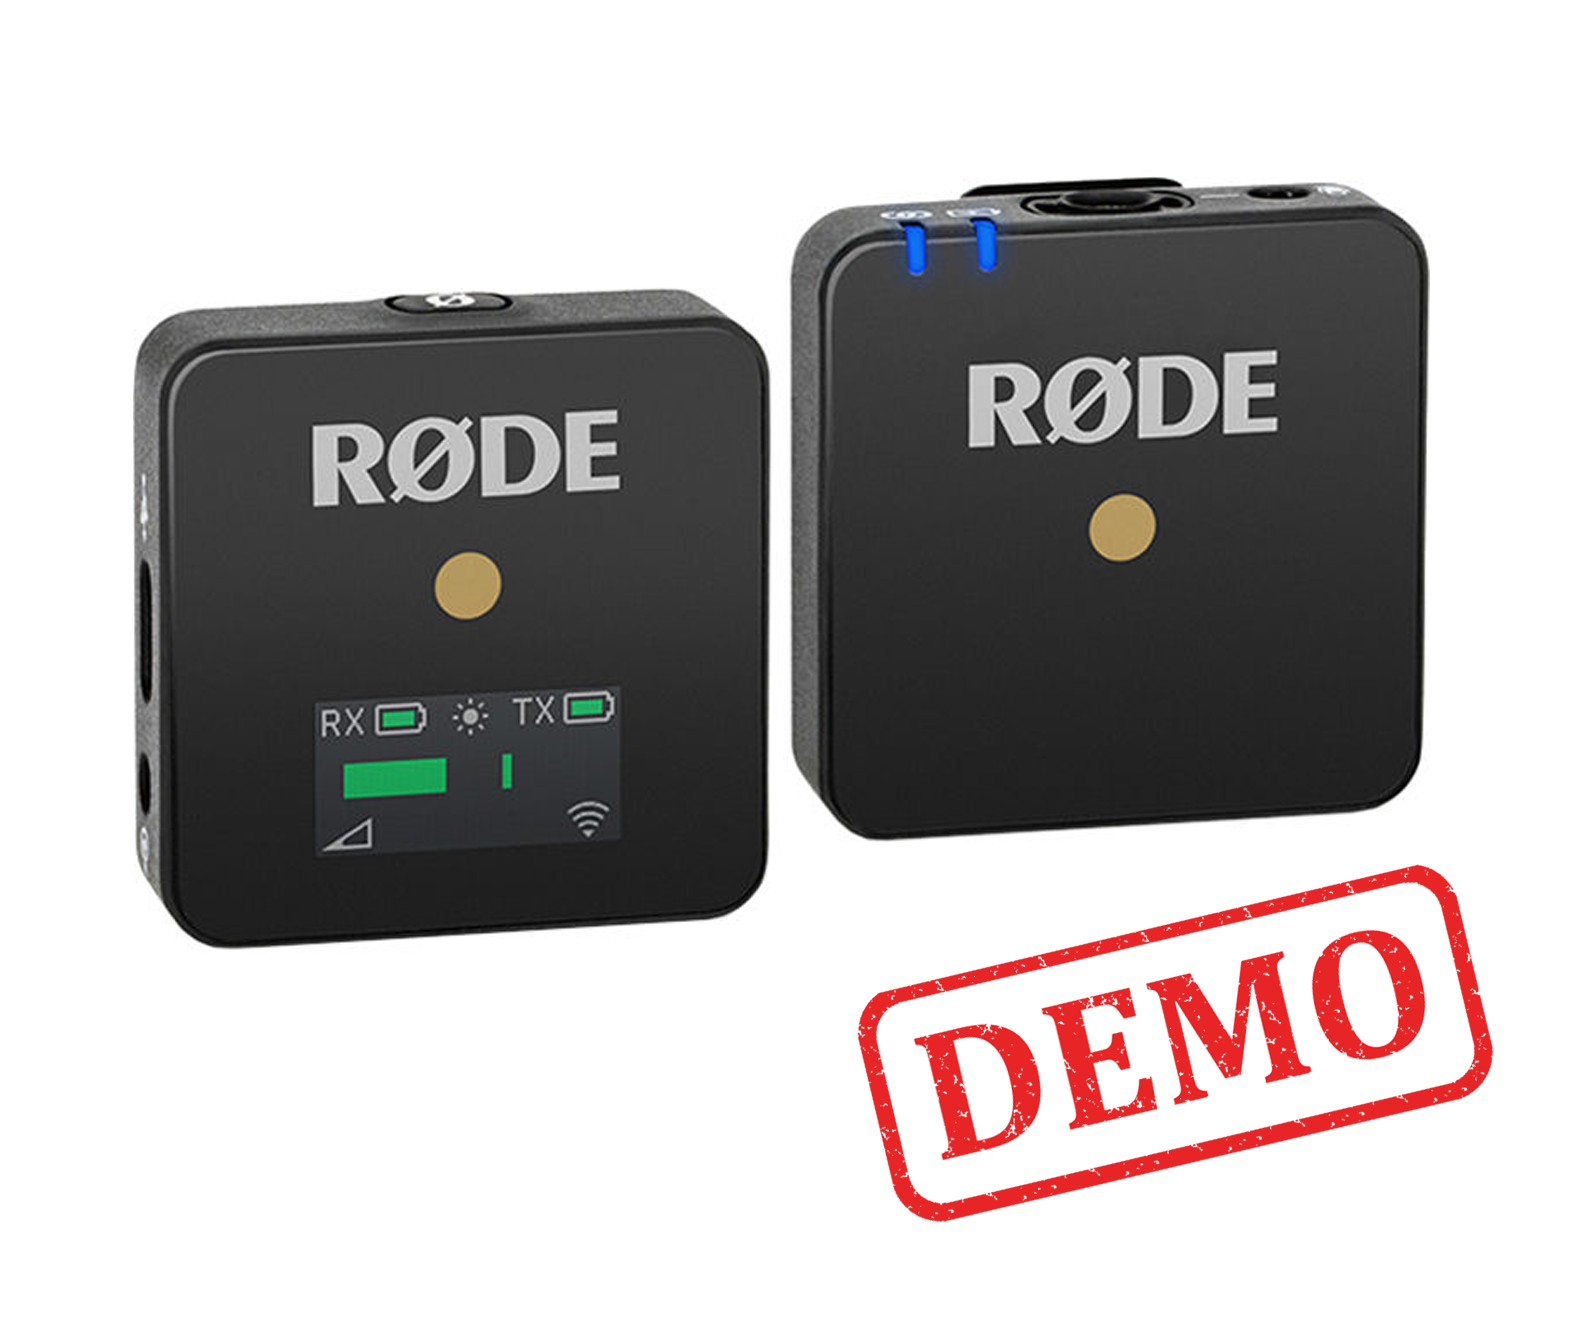 DEMO - Rode Wireless GO Compact Wireless Microphone System (2.4 GHz)